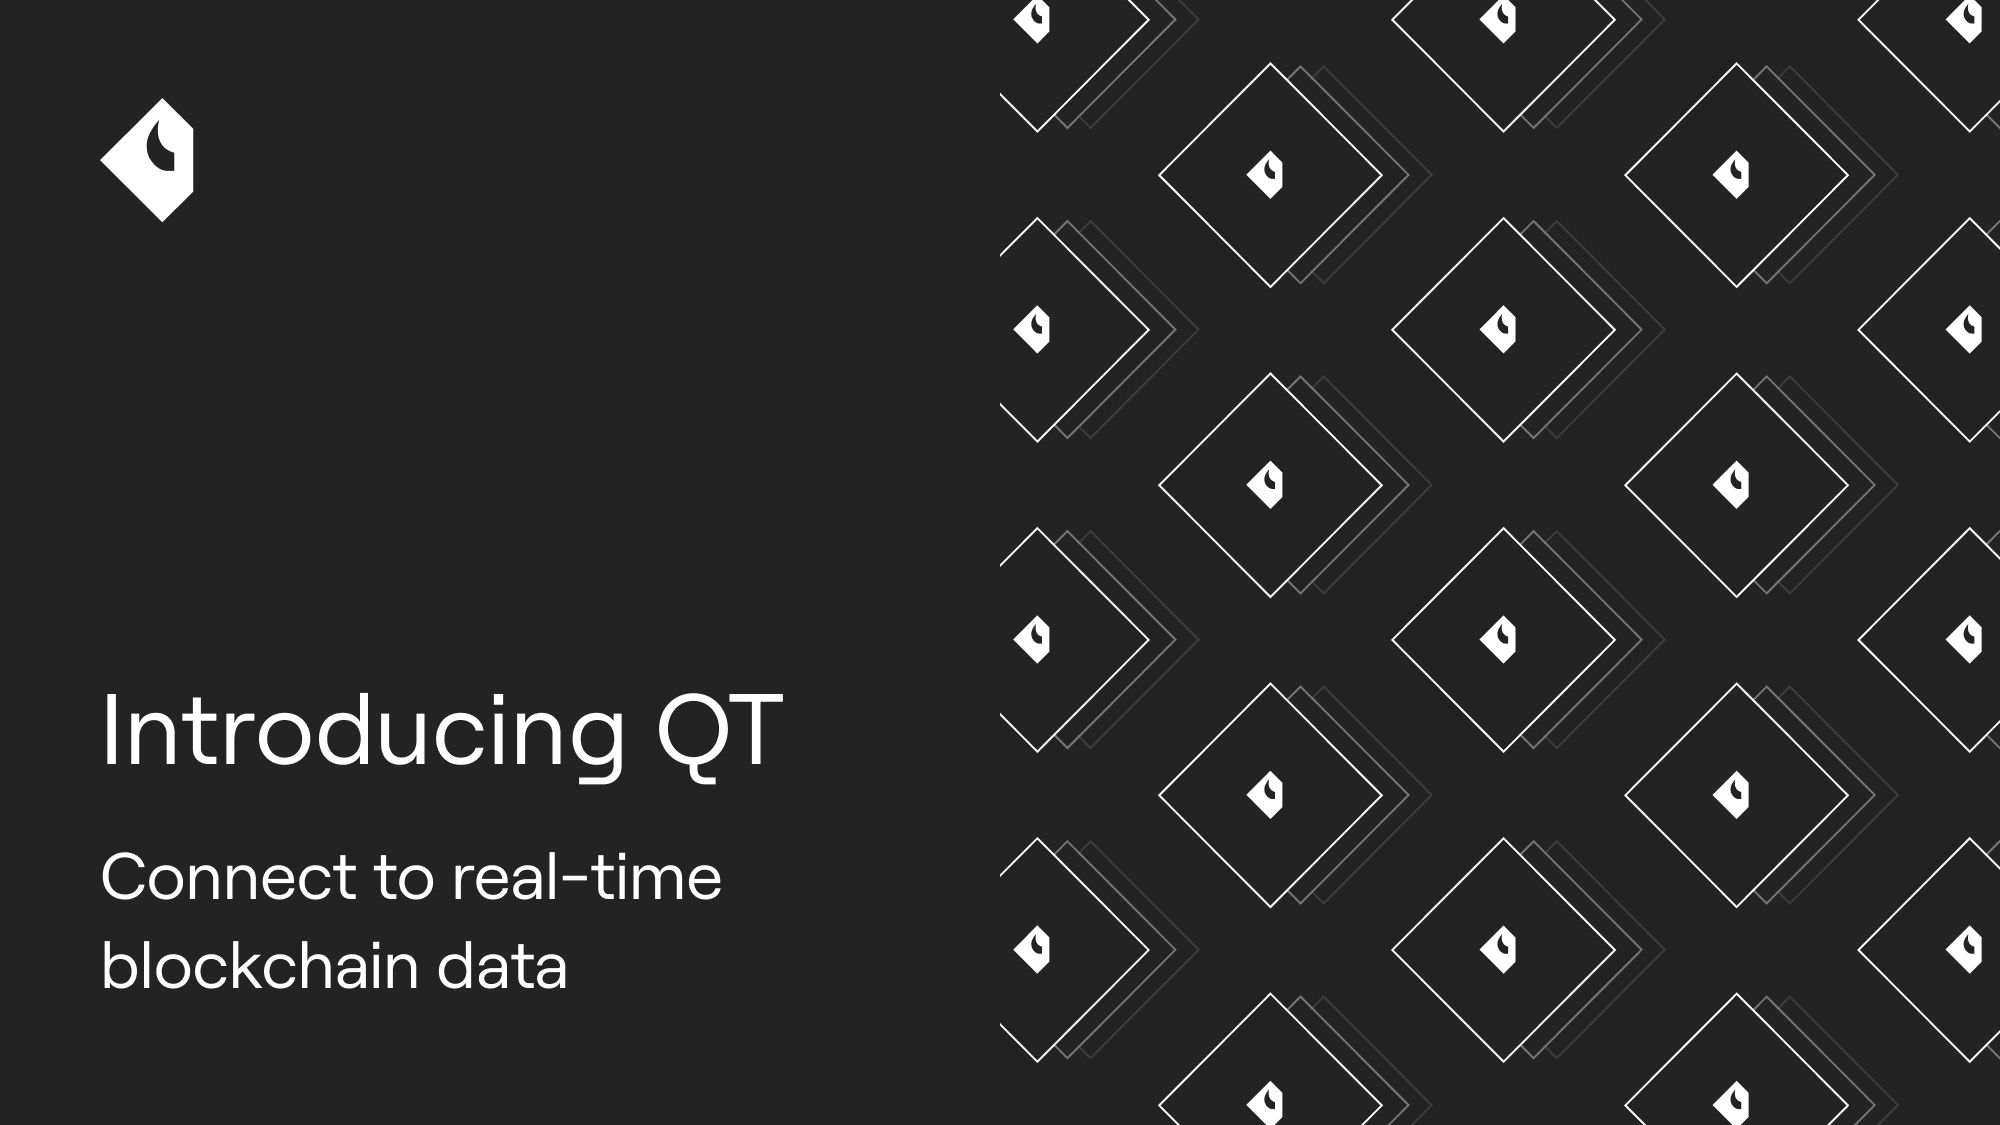 Introducing QT. Connect to real-time blockchain data from 20+ protocols.